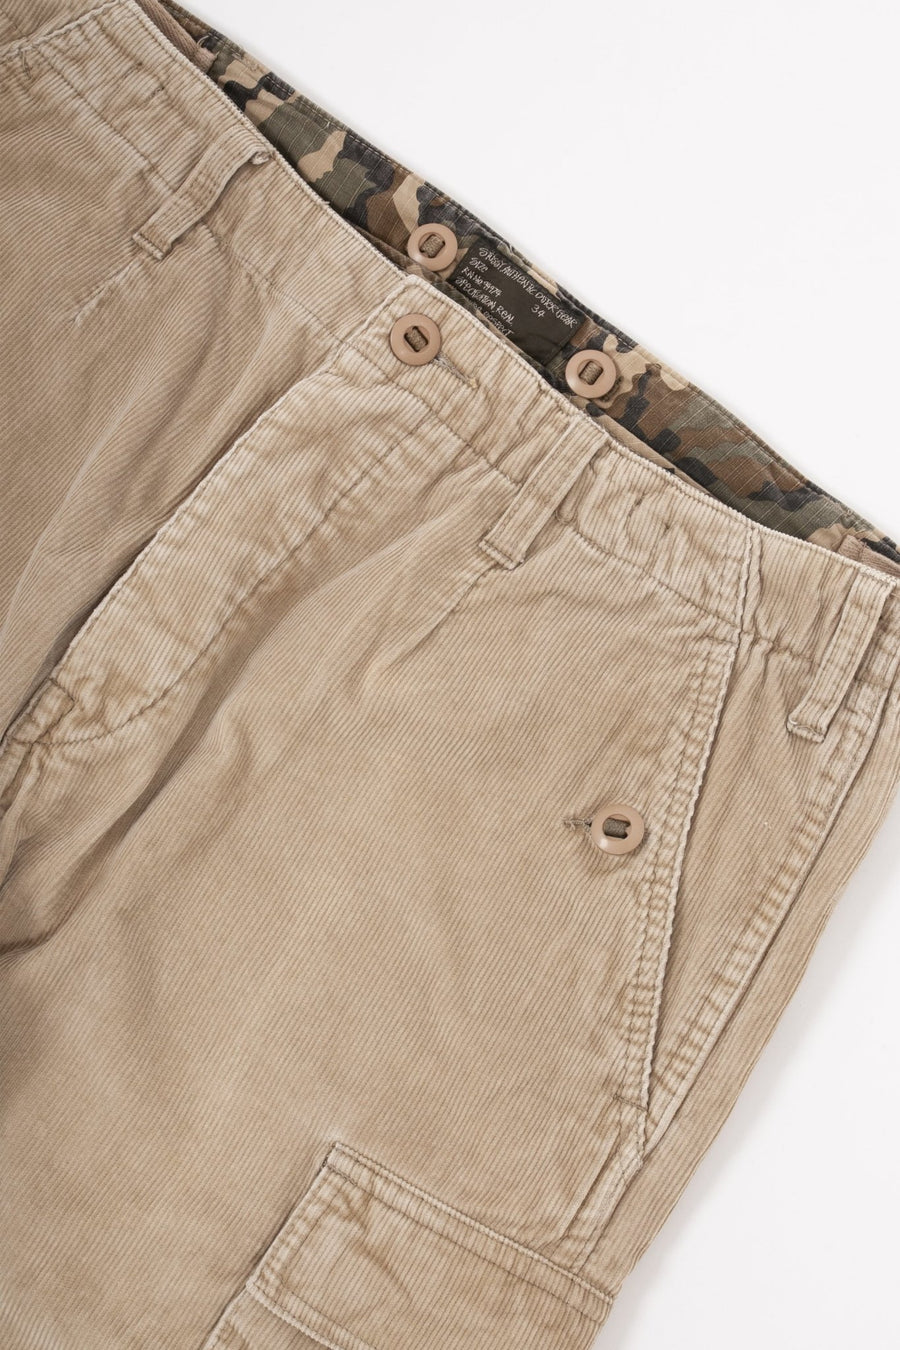 Pantalon Cargo Stussy Beige - WASTED PARIS